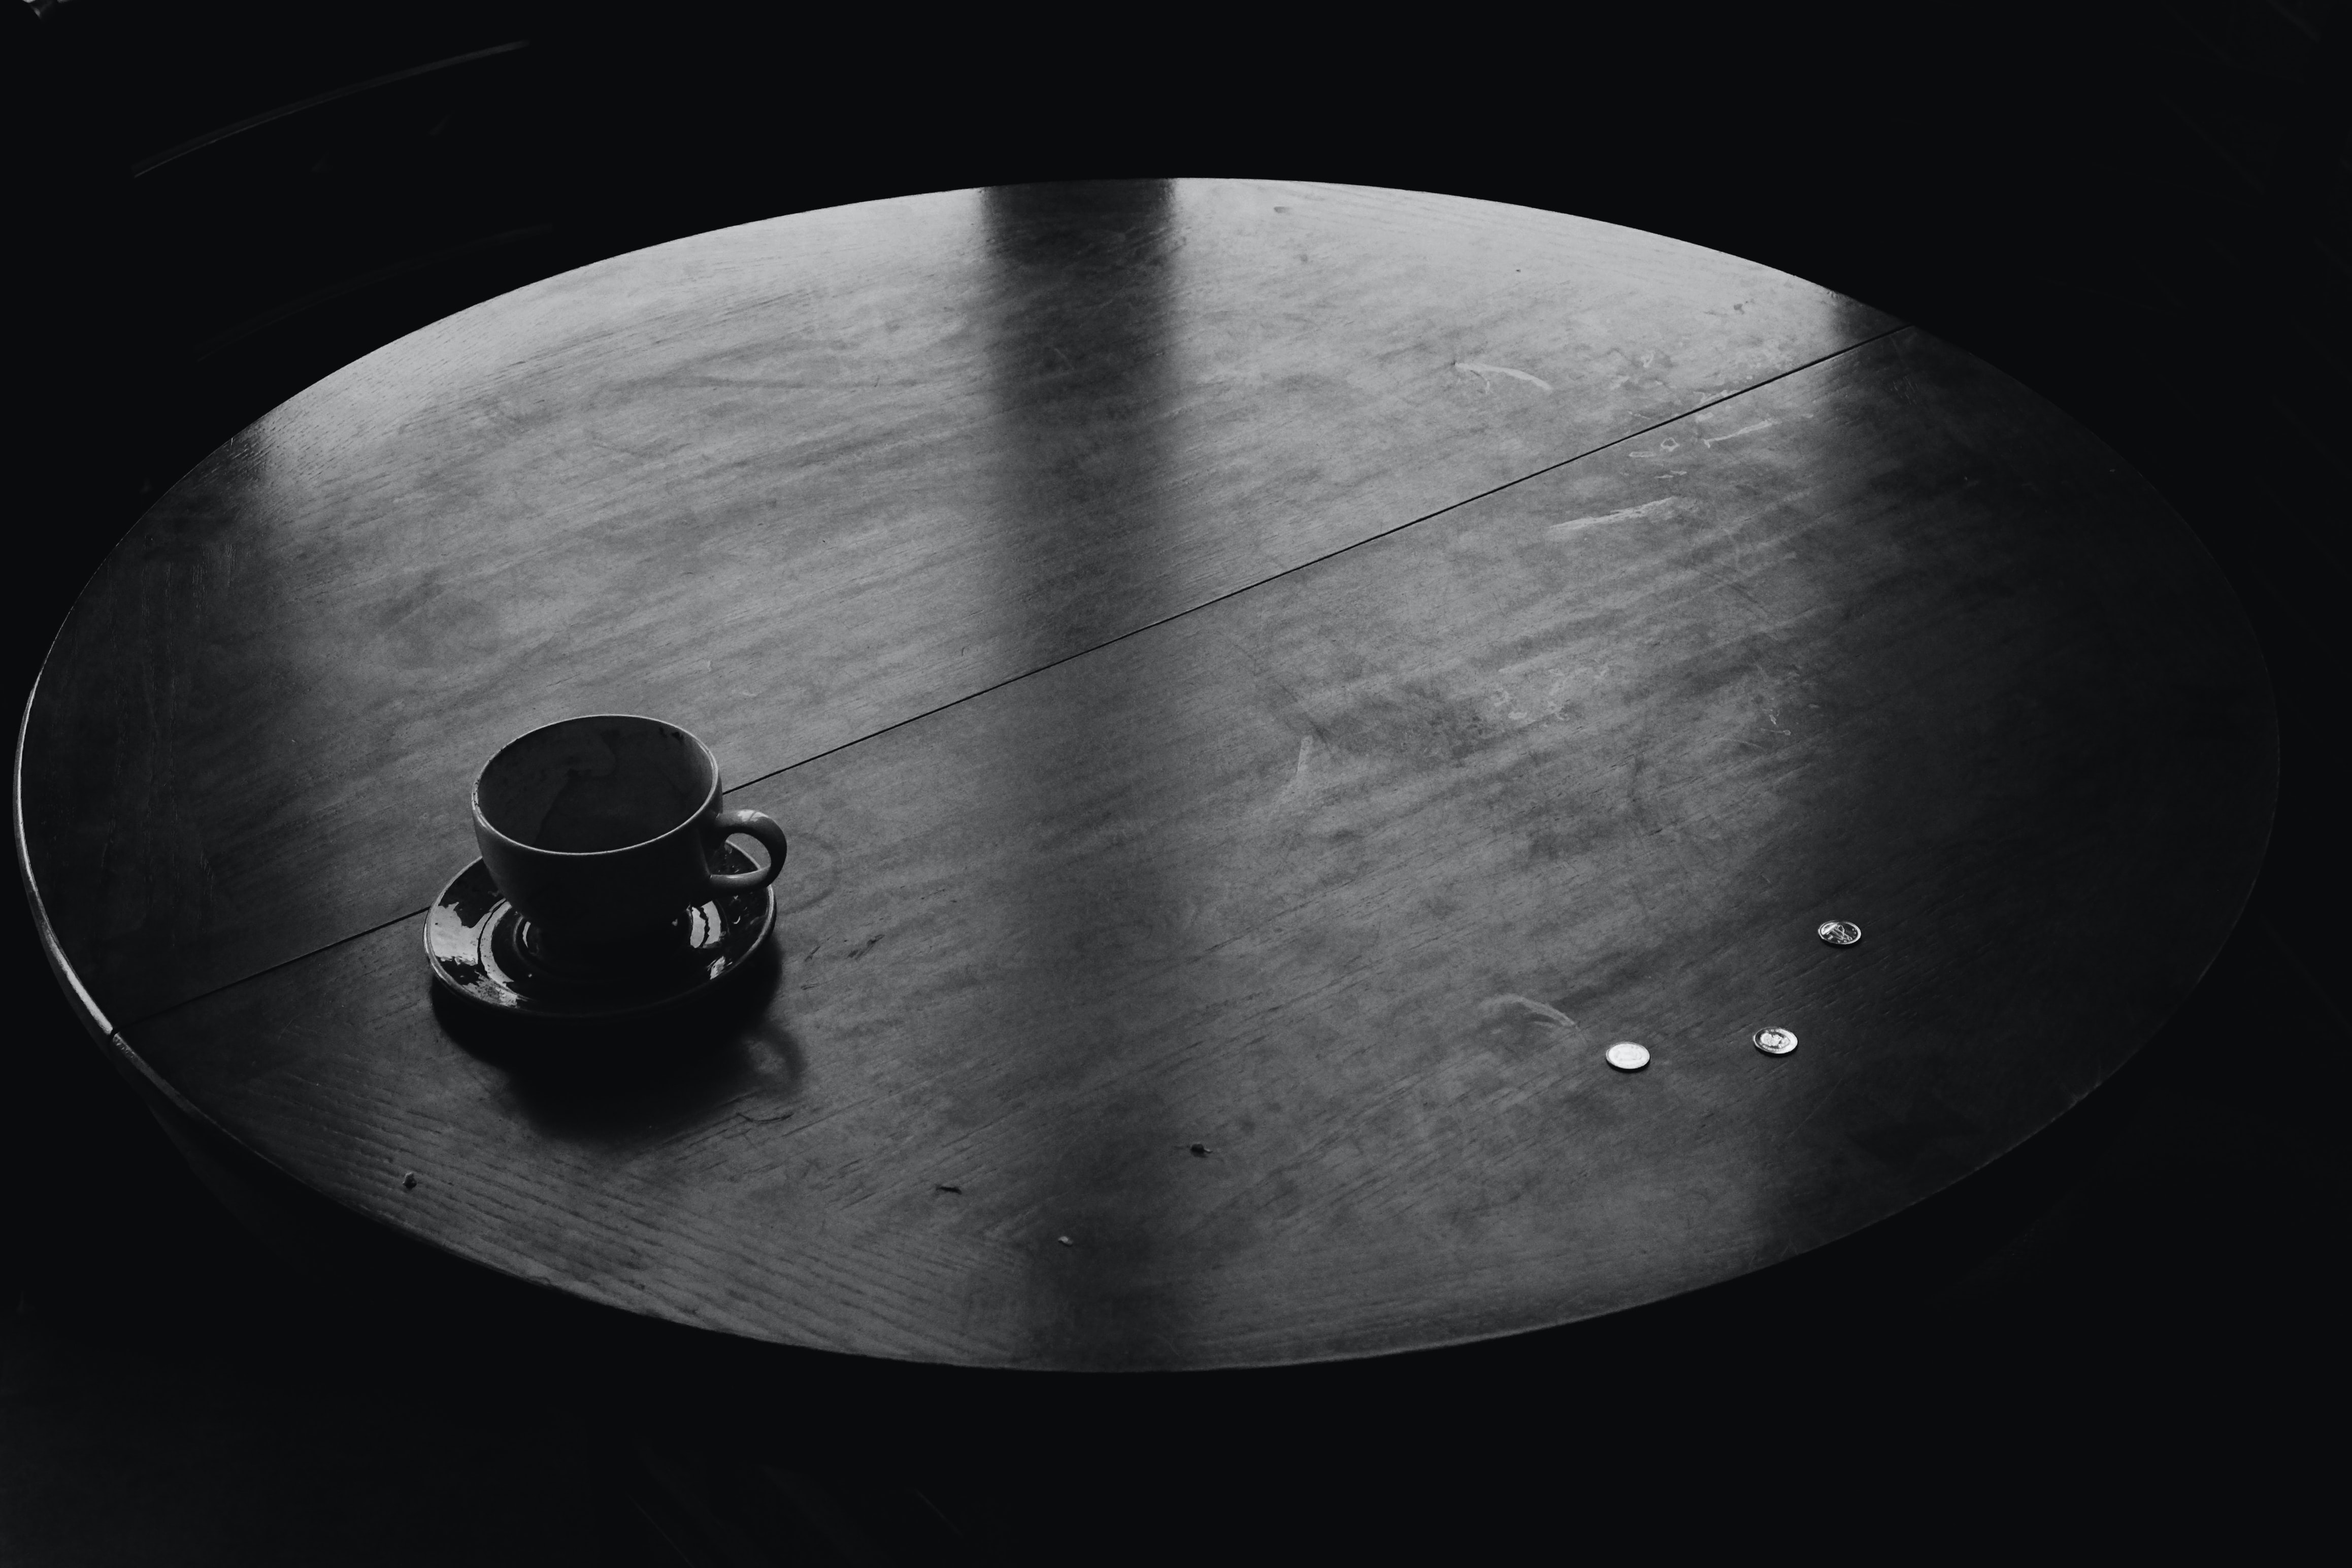 White mug on black plate on a black wooden table with three quarters on it in a dark room